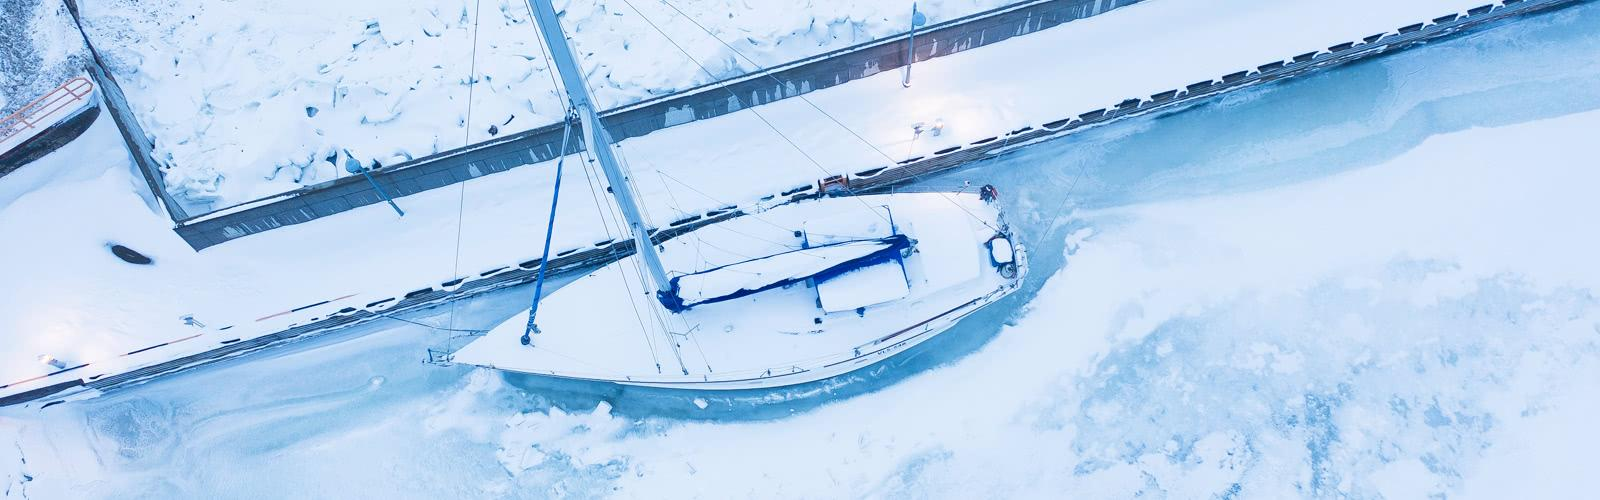 How to prepare your boat for winter storage